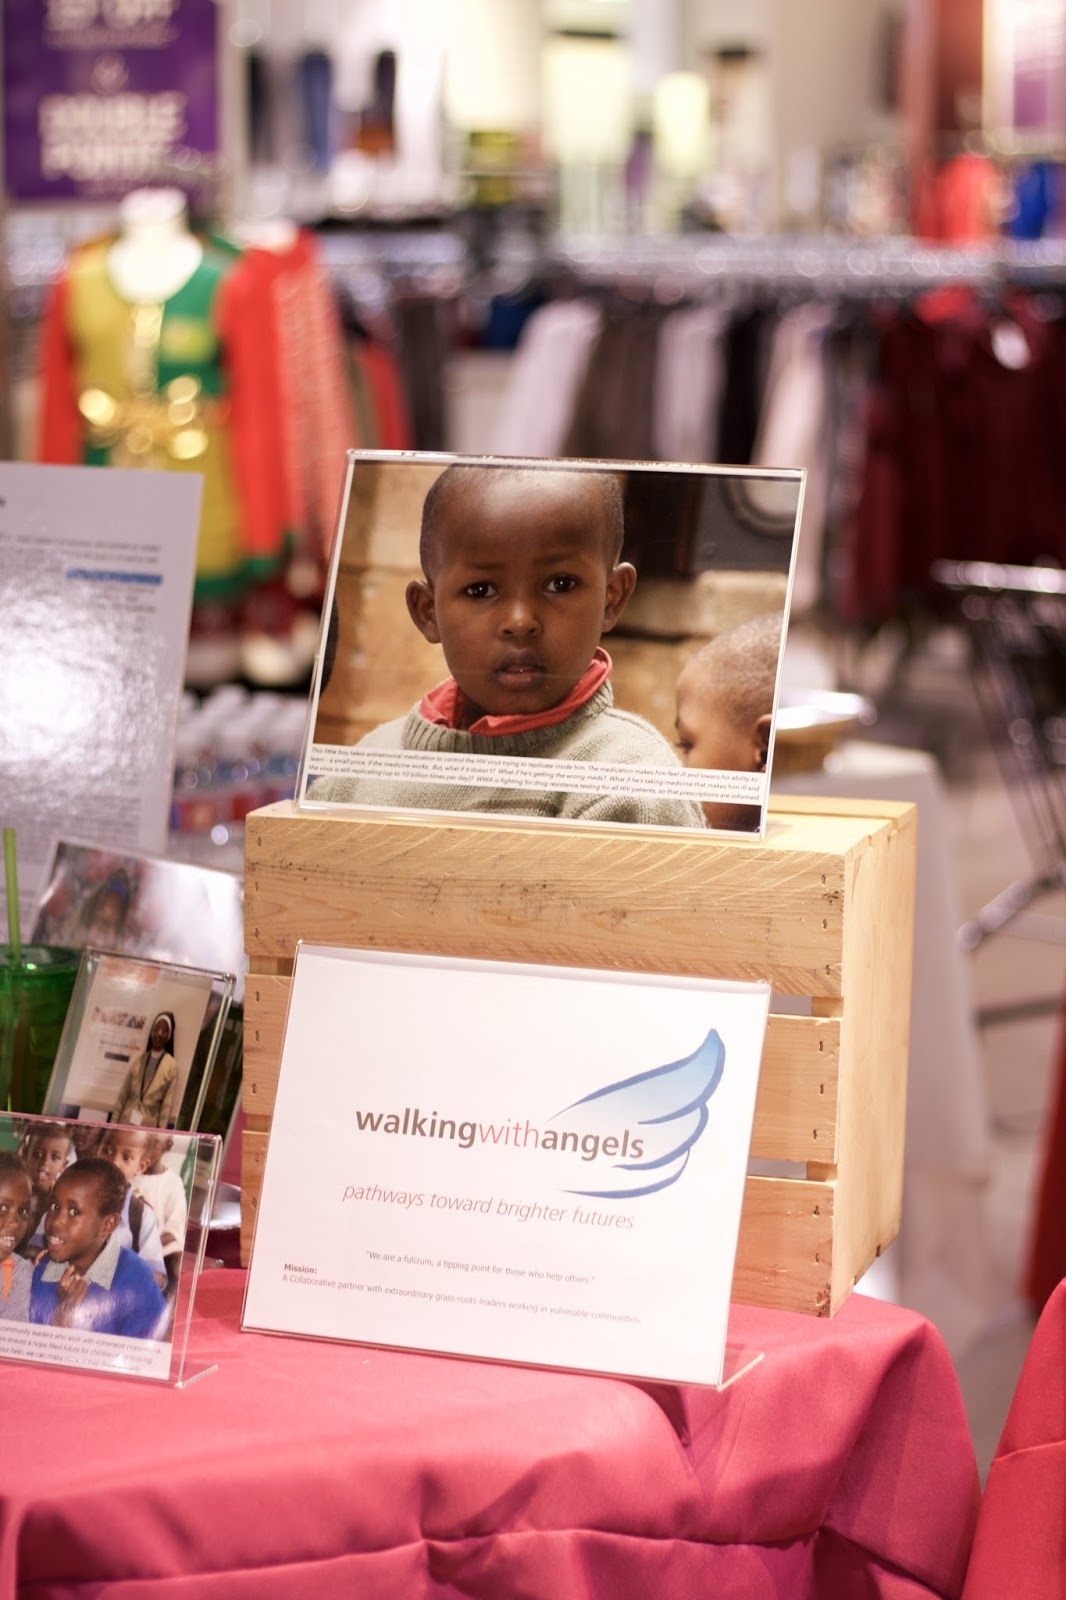 Walking With Angels local charity